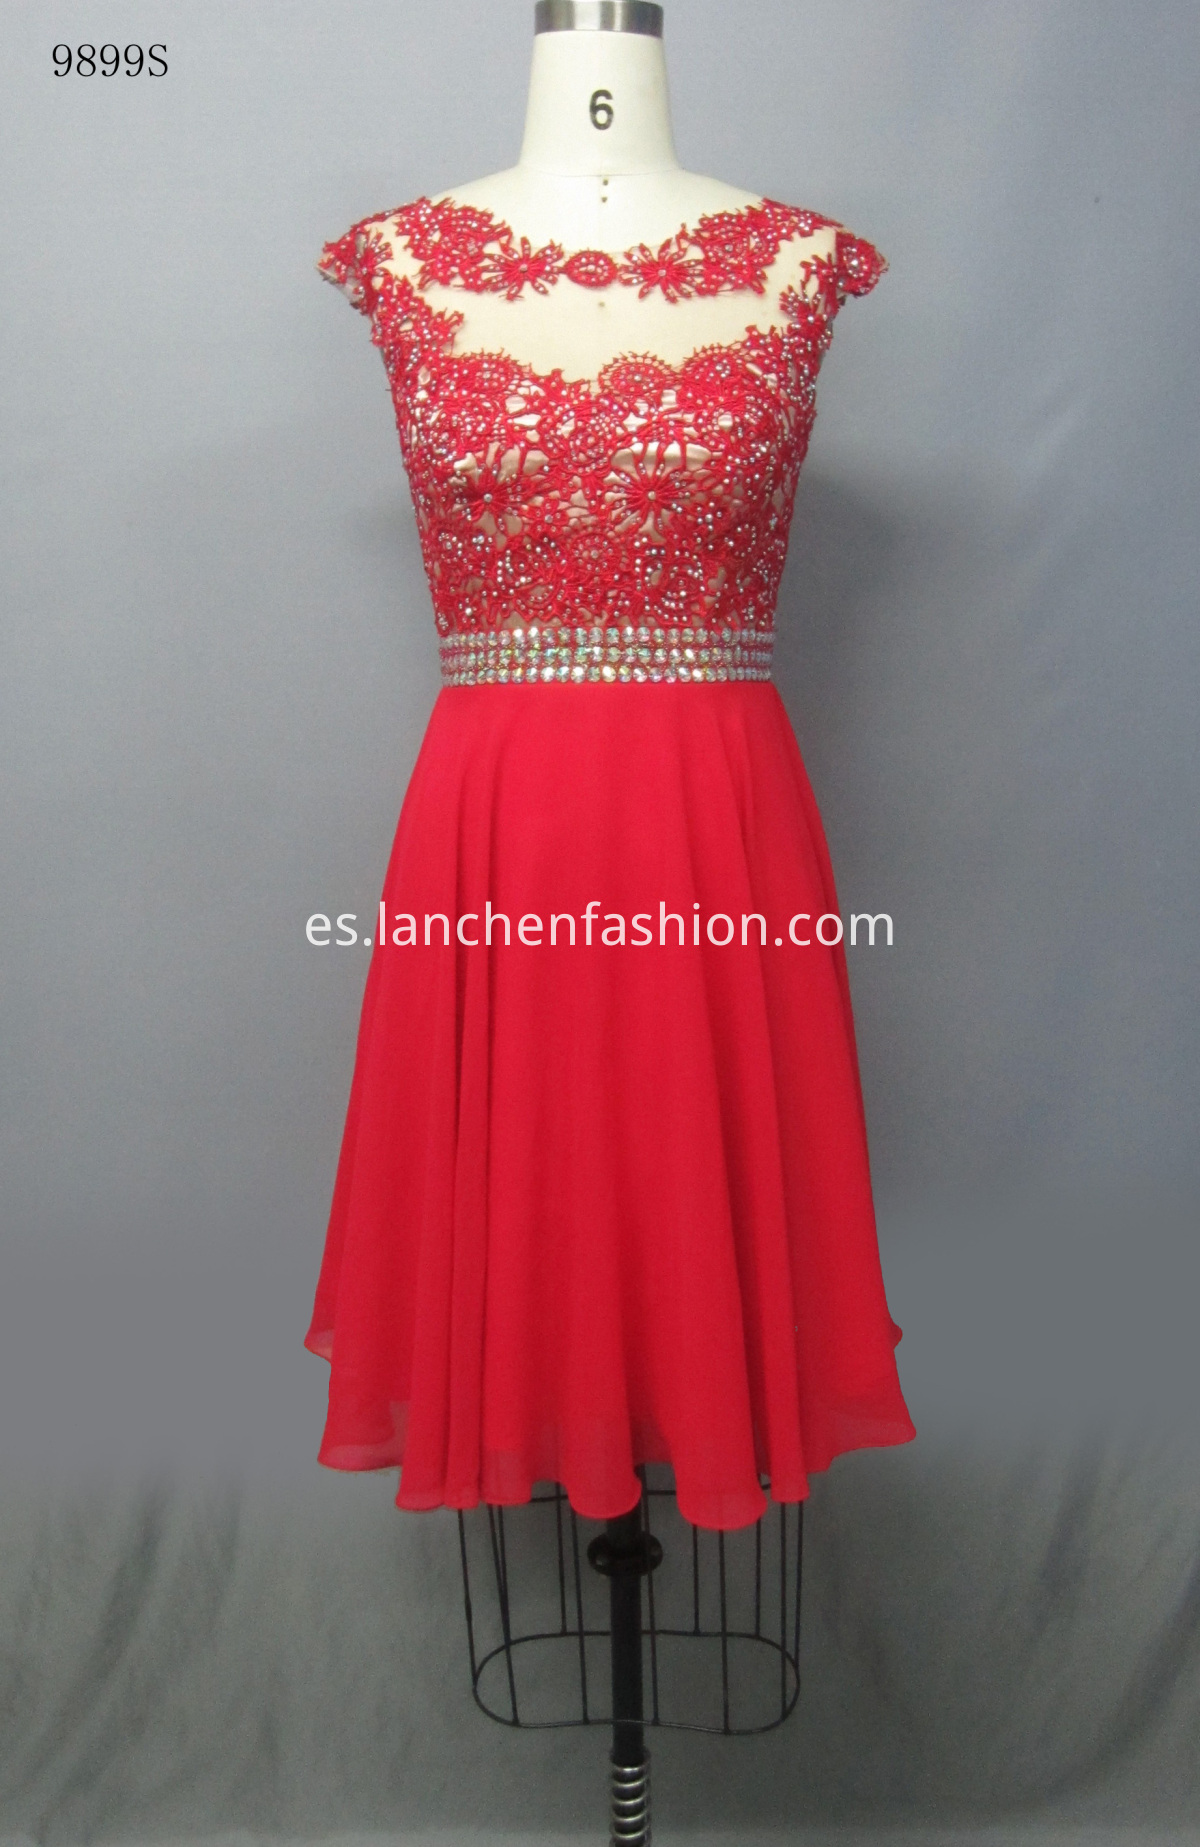 Evening Sleeve Dress RED